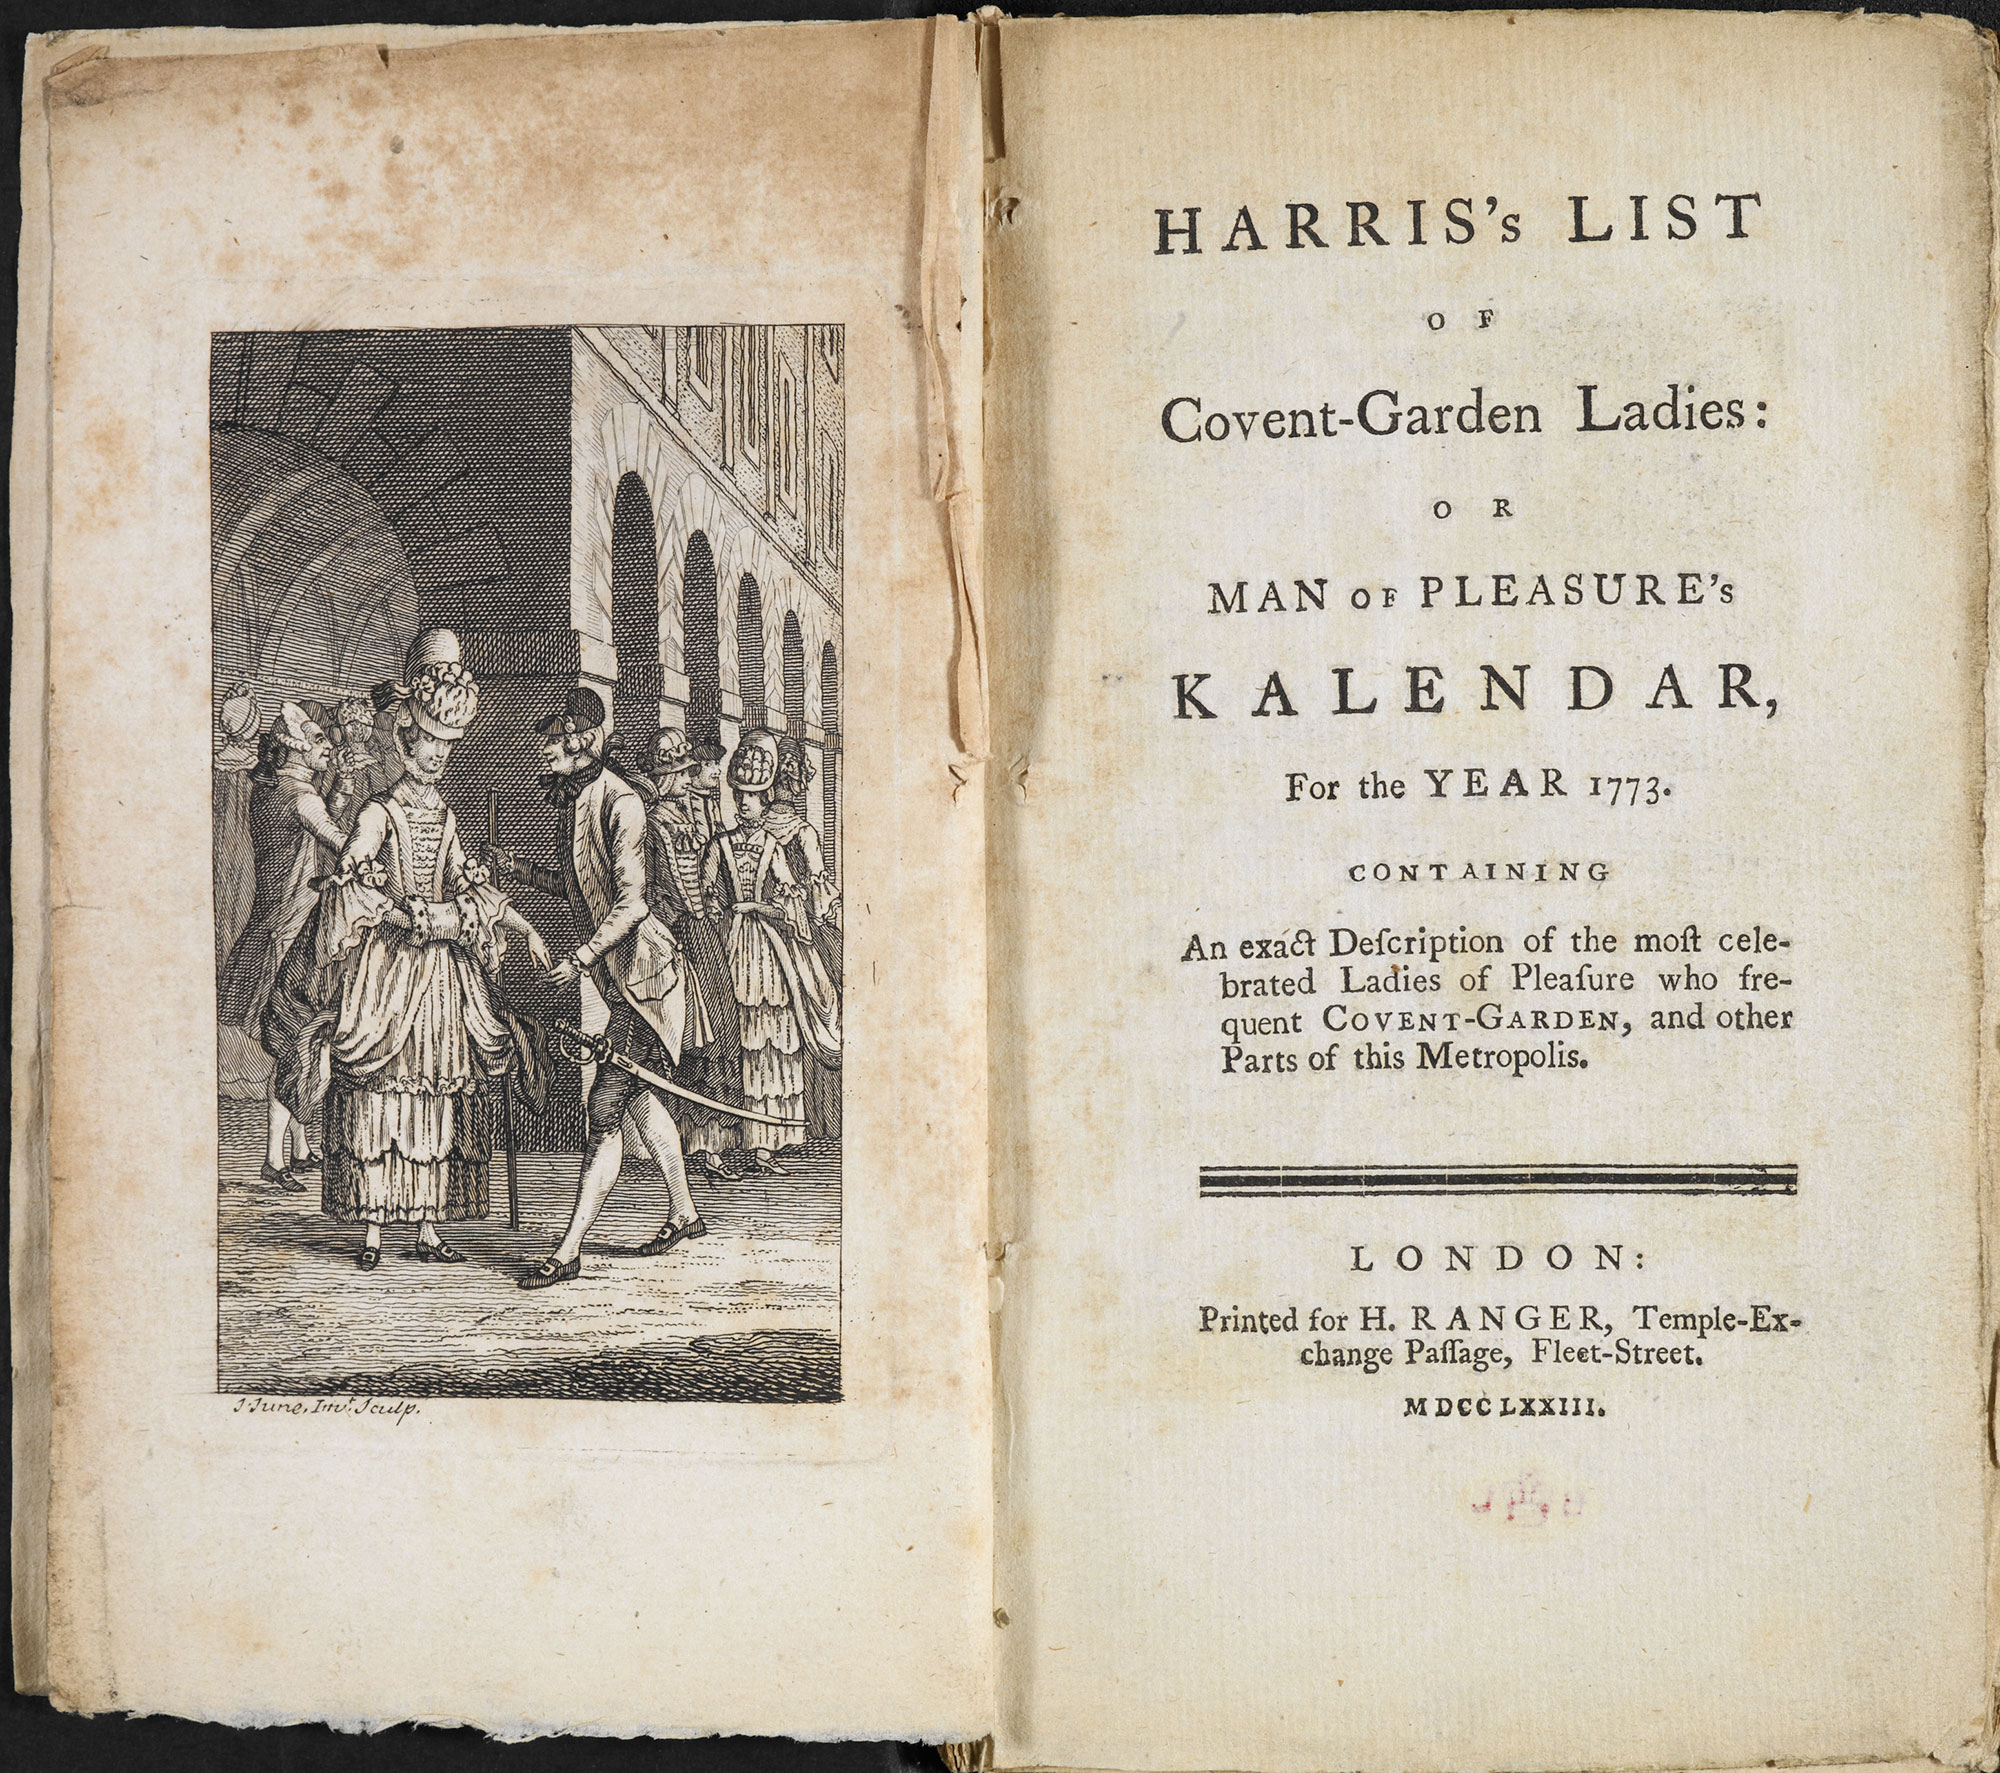 Harris's List of Covent-Garden Ladies, an 18th century guide to prostitutes